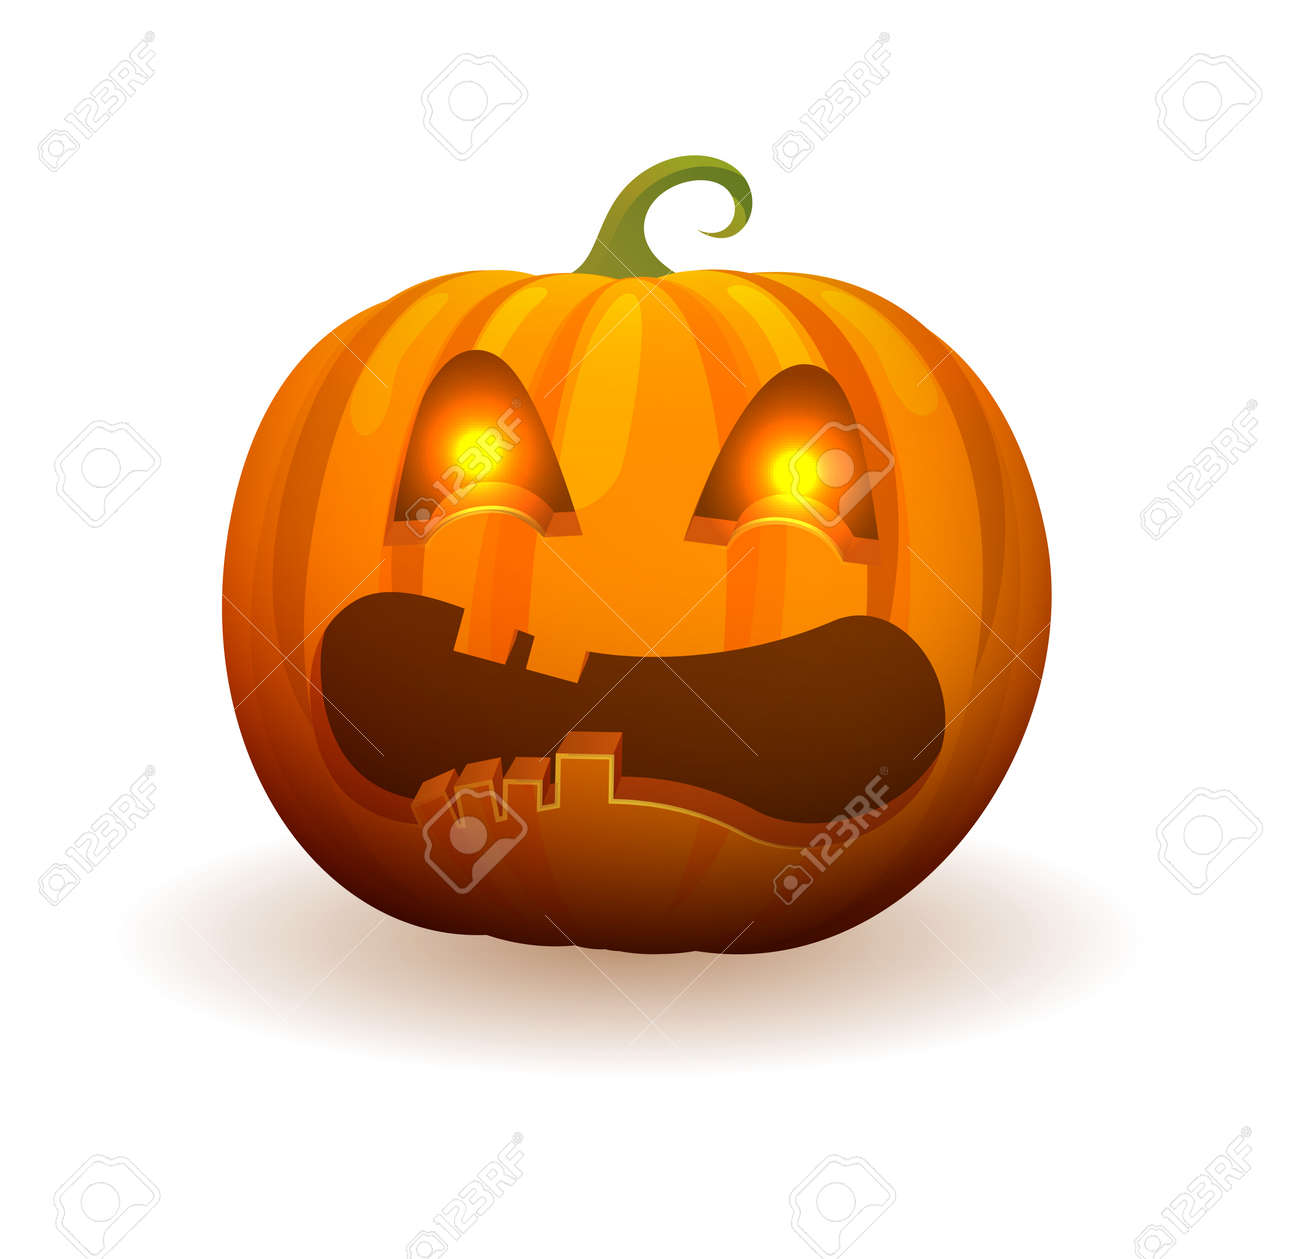 Pumpkin with lighted bright eyes, scary angry face and curled stem on top isolated cartoon vector illustration on white background. - 90770474